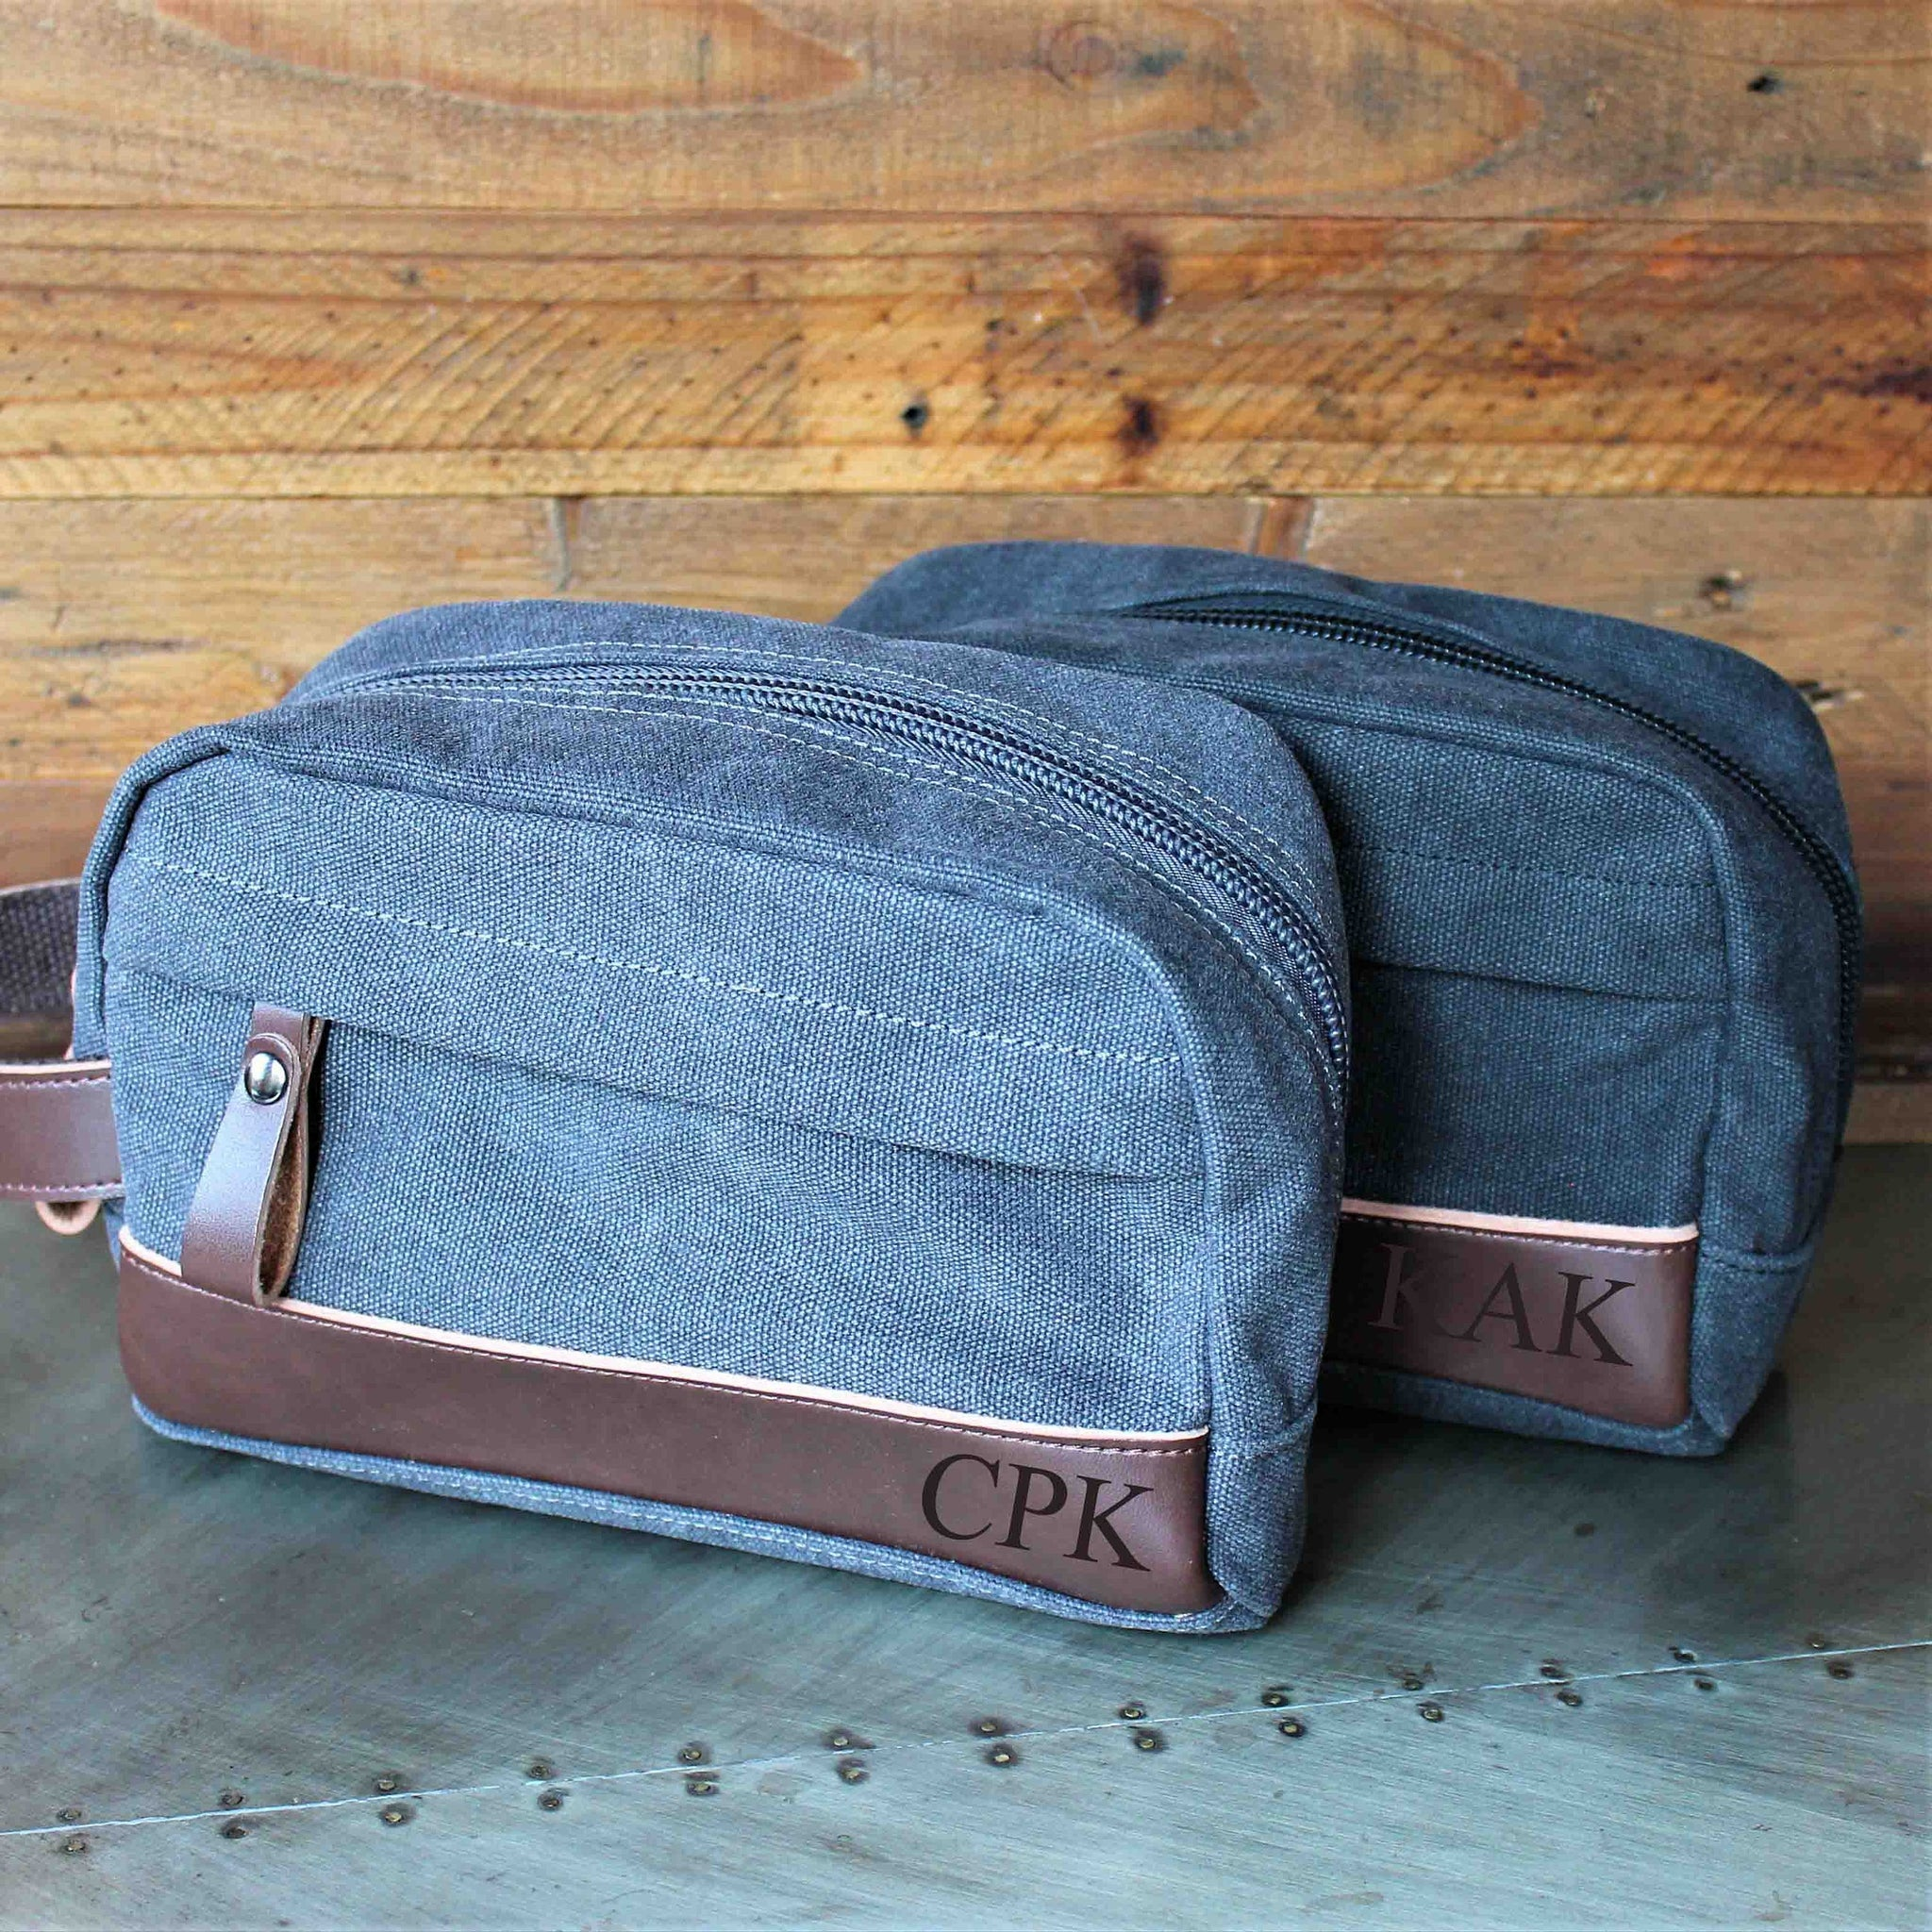 fe39b482b2 The Peale - Groomsmen s Travel Size Toiletry Bag in Black or Gray - Personalized  Canvas Dopp Kit